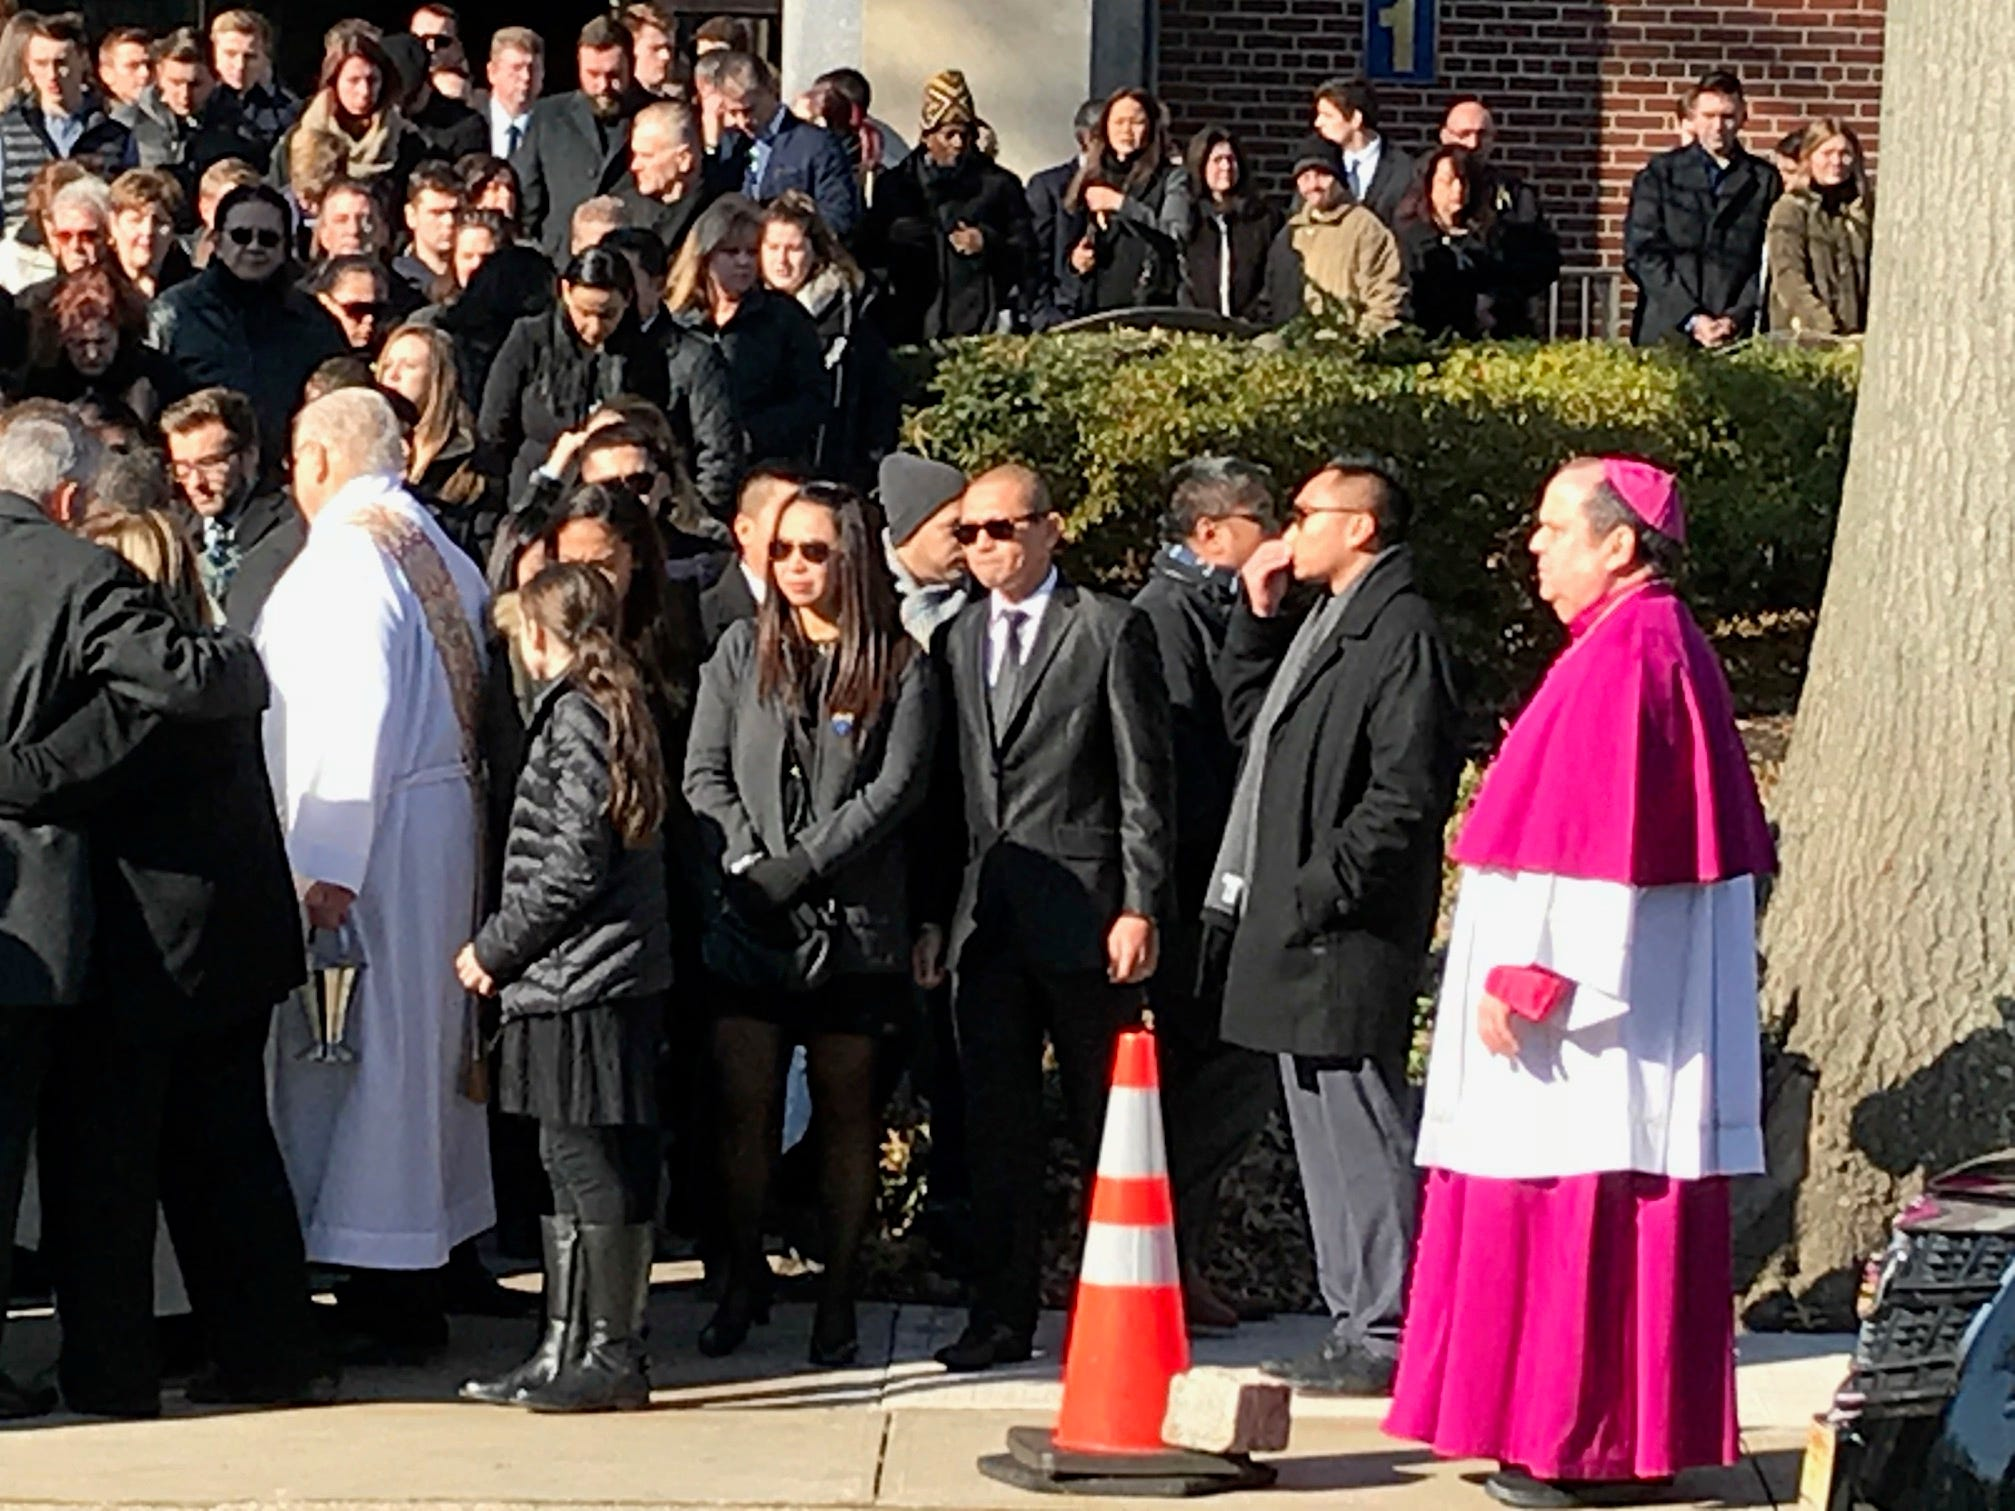 Michael Sot's family and friends gather outside the church following his funeral.